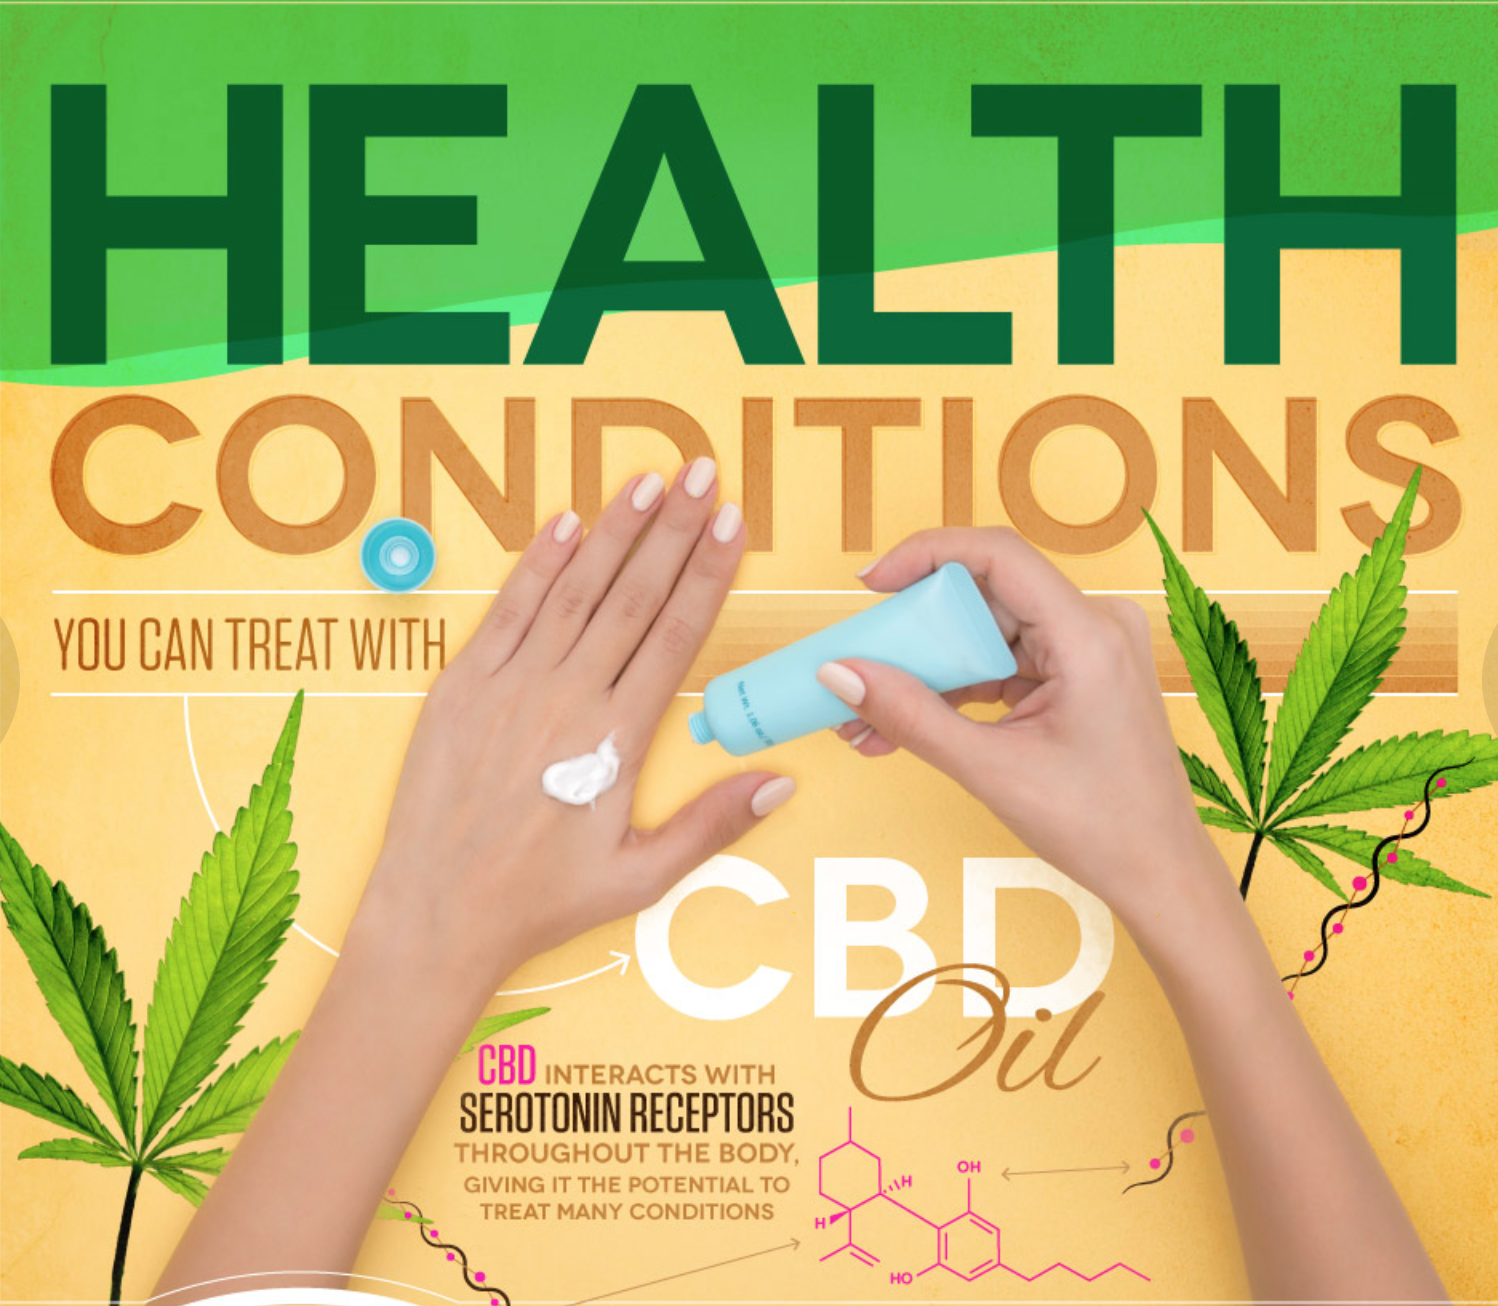 A Look at the Health Benefits of CBD Oil - ART + marketing